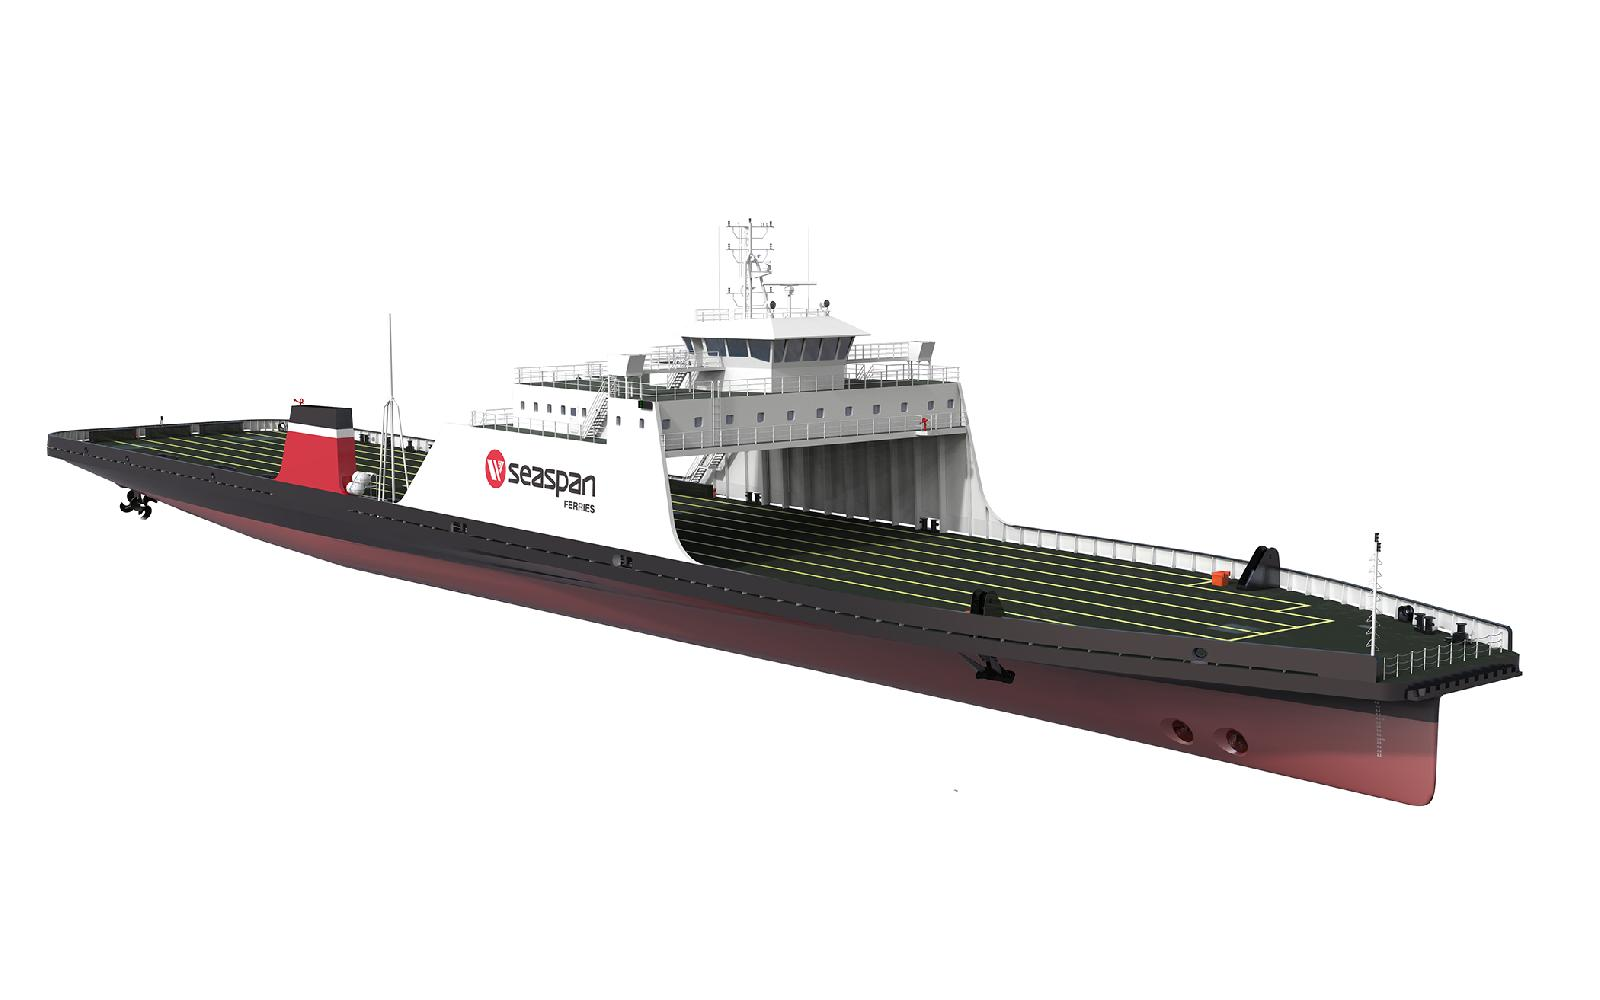 Elkon awarded contract for electrical installation & propulsion system for two Seaspan hybrid ferries